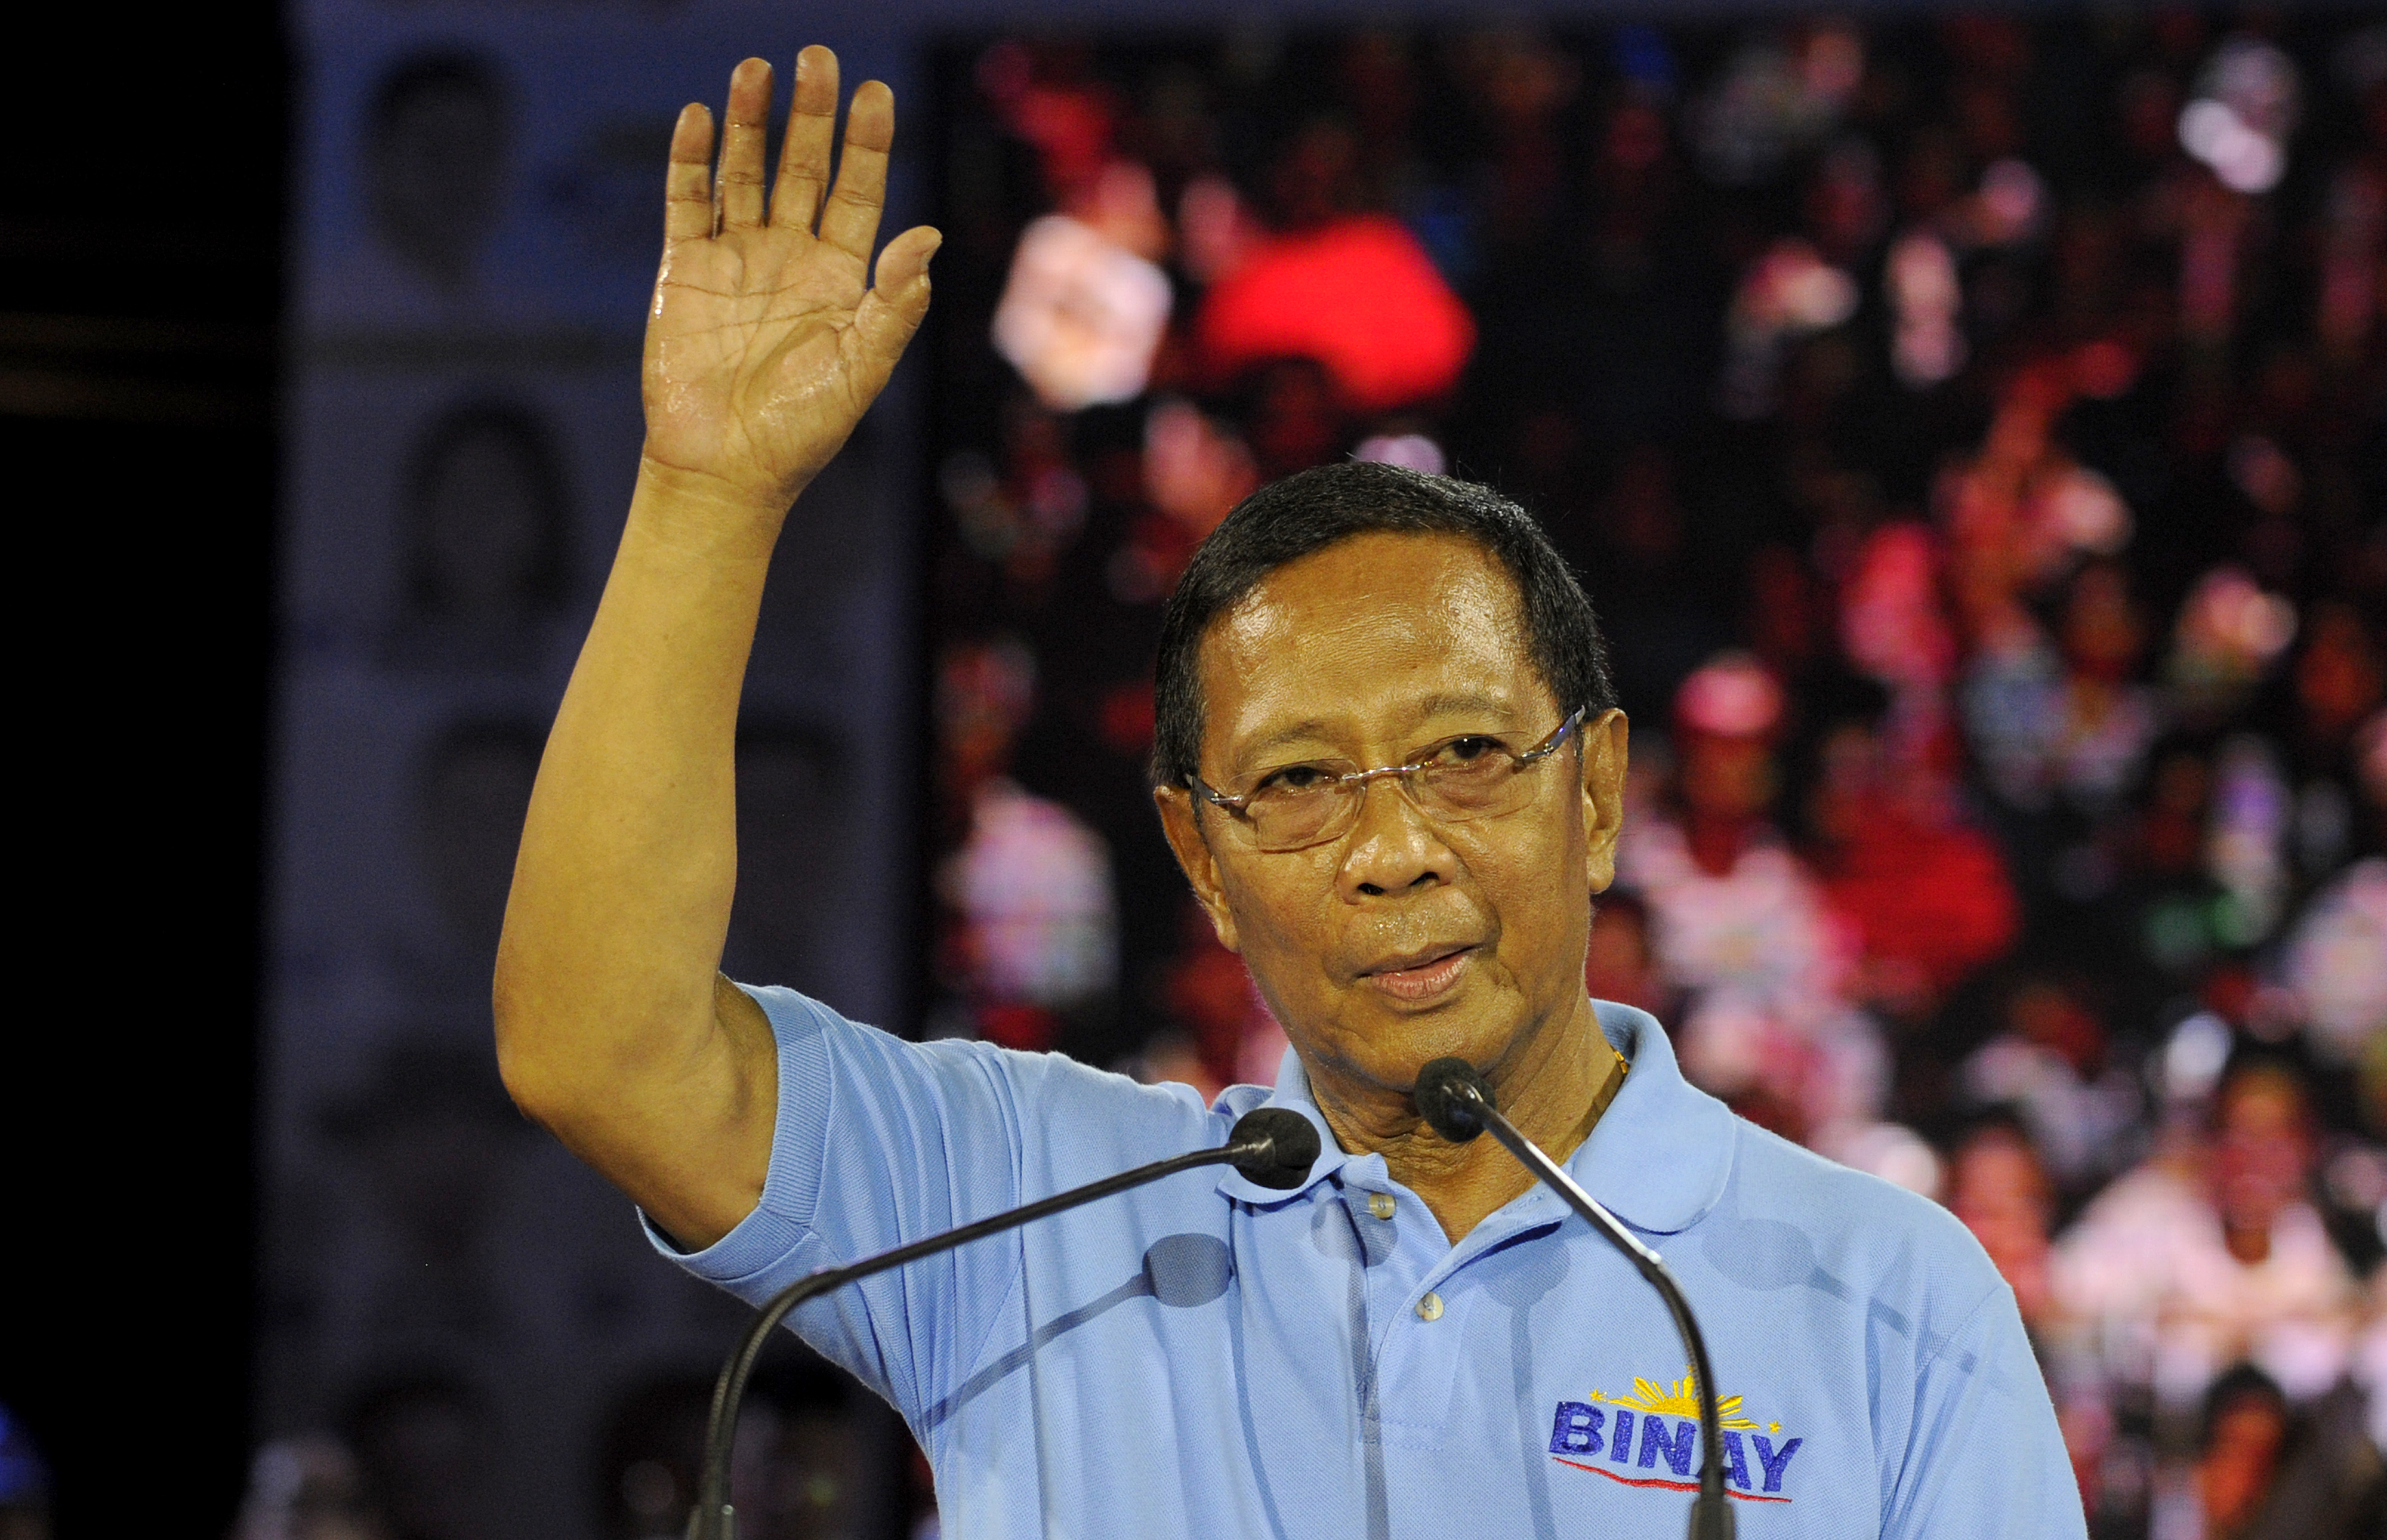 Presidential candidate and Vice President Jejomar Binay speaks to supporters during his Miting De Avance in Manila on May 7, 2016.  Philippine President Benigno Aquino warned May 7 the frontrunner in the race to replace him carried similar dangers to Hitler and would bring terror to the nation. / AFP PHOTO / NOEL CELIS